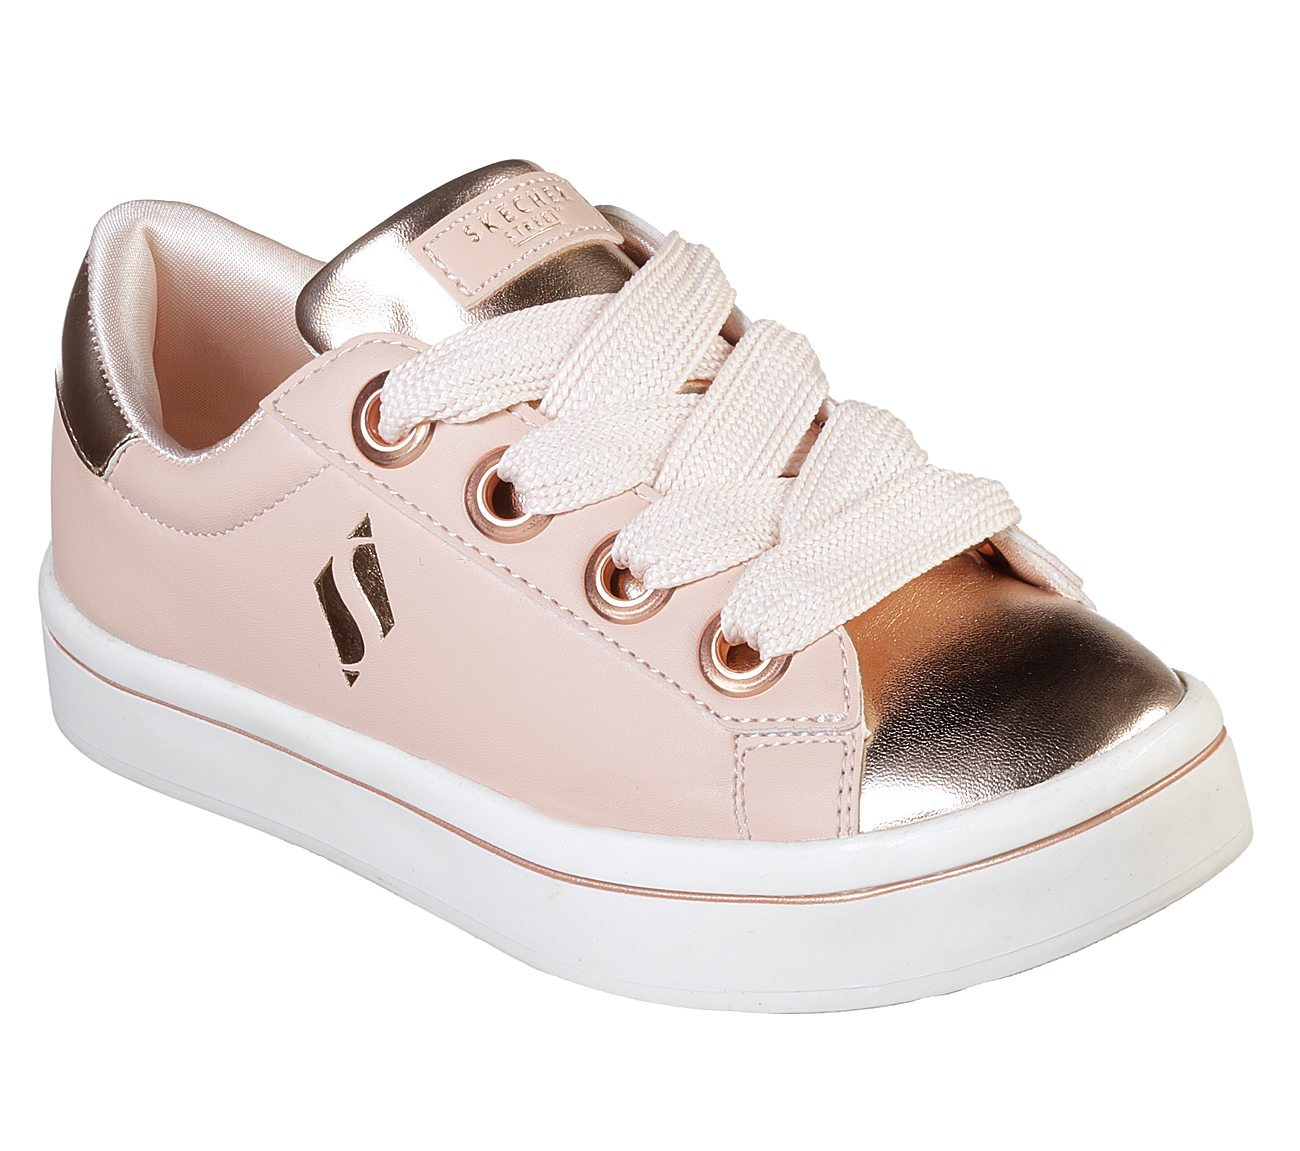 Discounts Cheap Online Cheap Perfect Skechers Hi-Lites Medal Toes Sneaker(Girls') -White/Silver For Sale Official Site Outlet Marketable NJ573